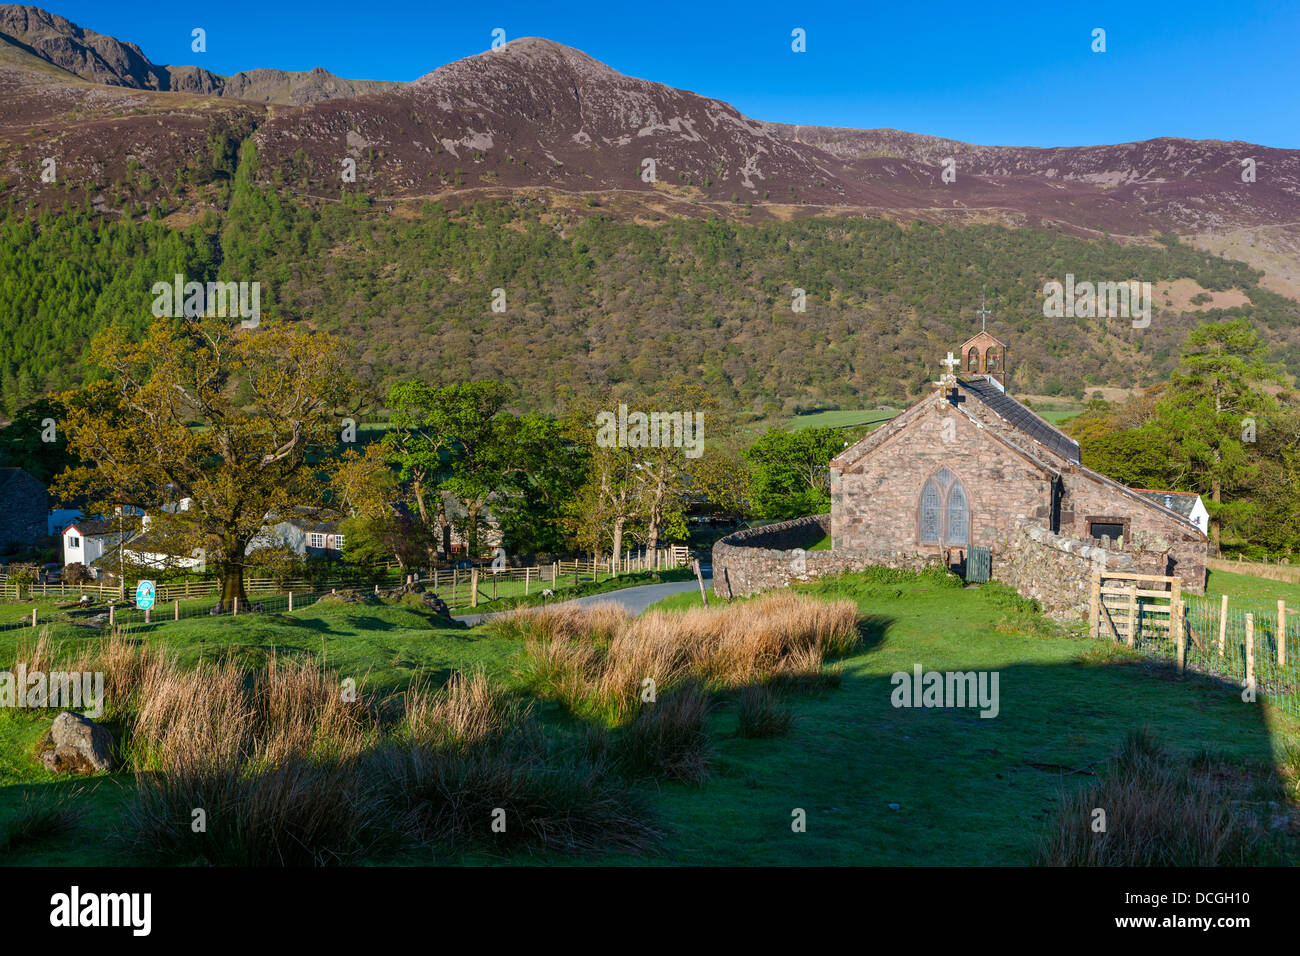 St James' Church in Buttermere, Lake District National Park, Cumbria, England, UK, Europe. Stock Photo